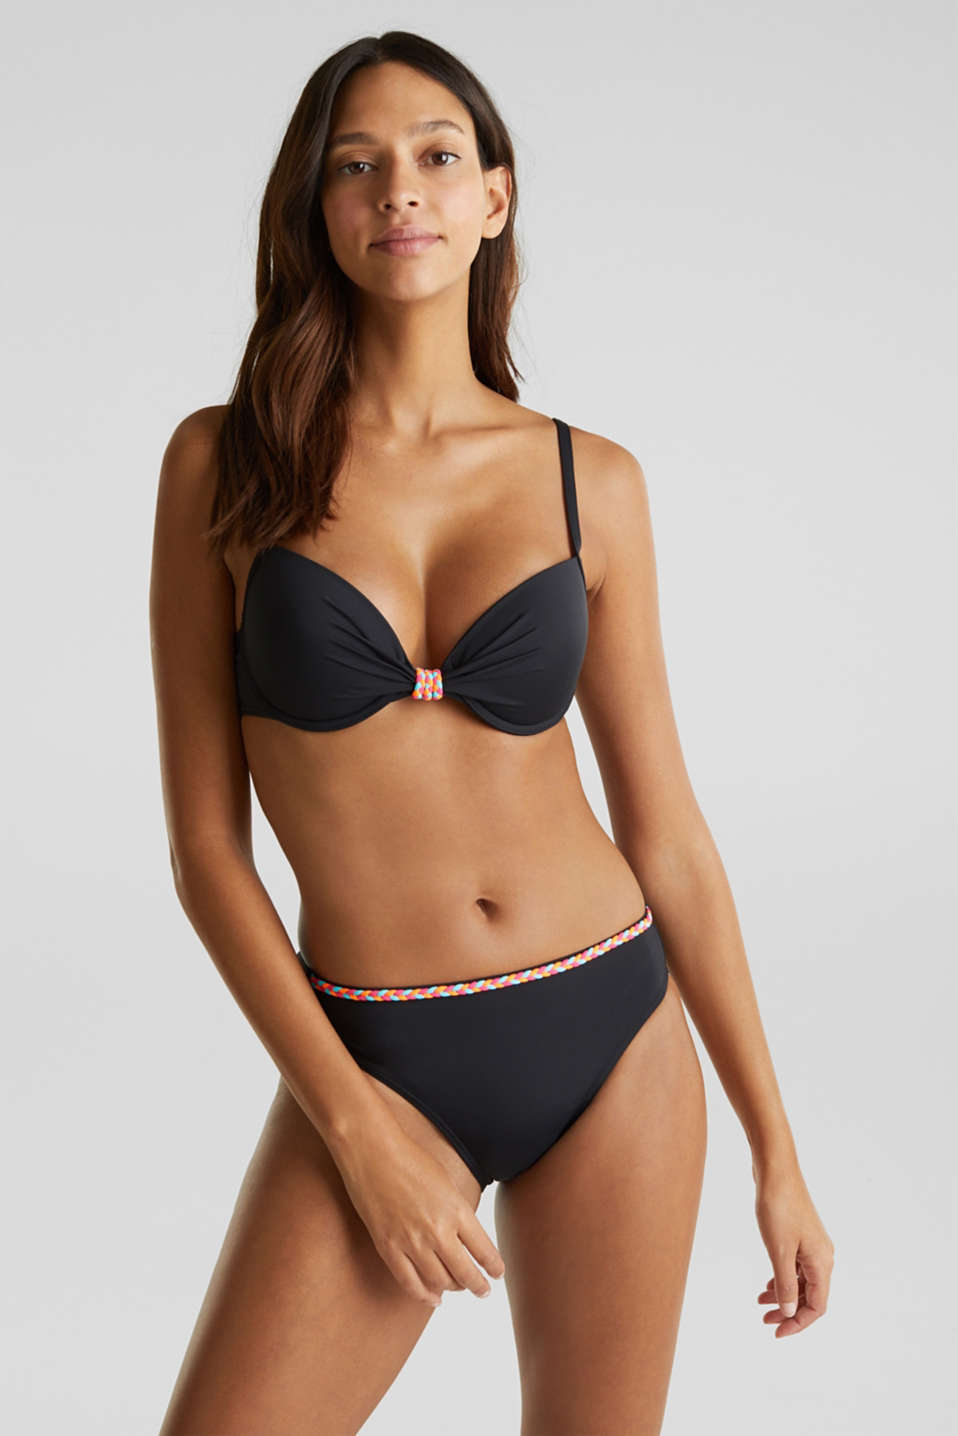 Esprit - Top push up con detalles trenzados